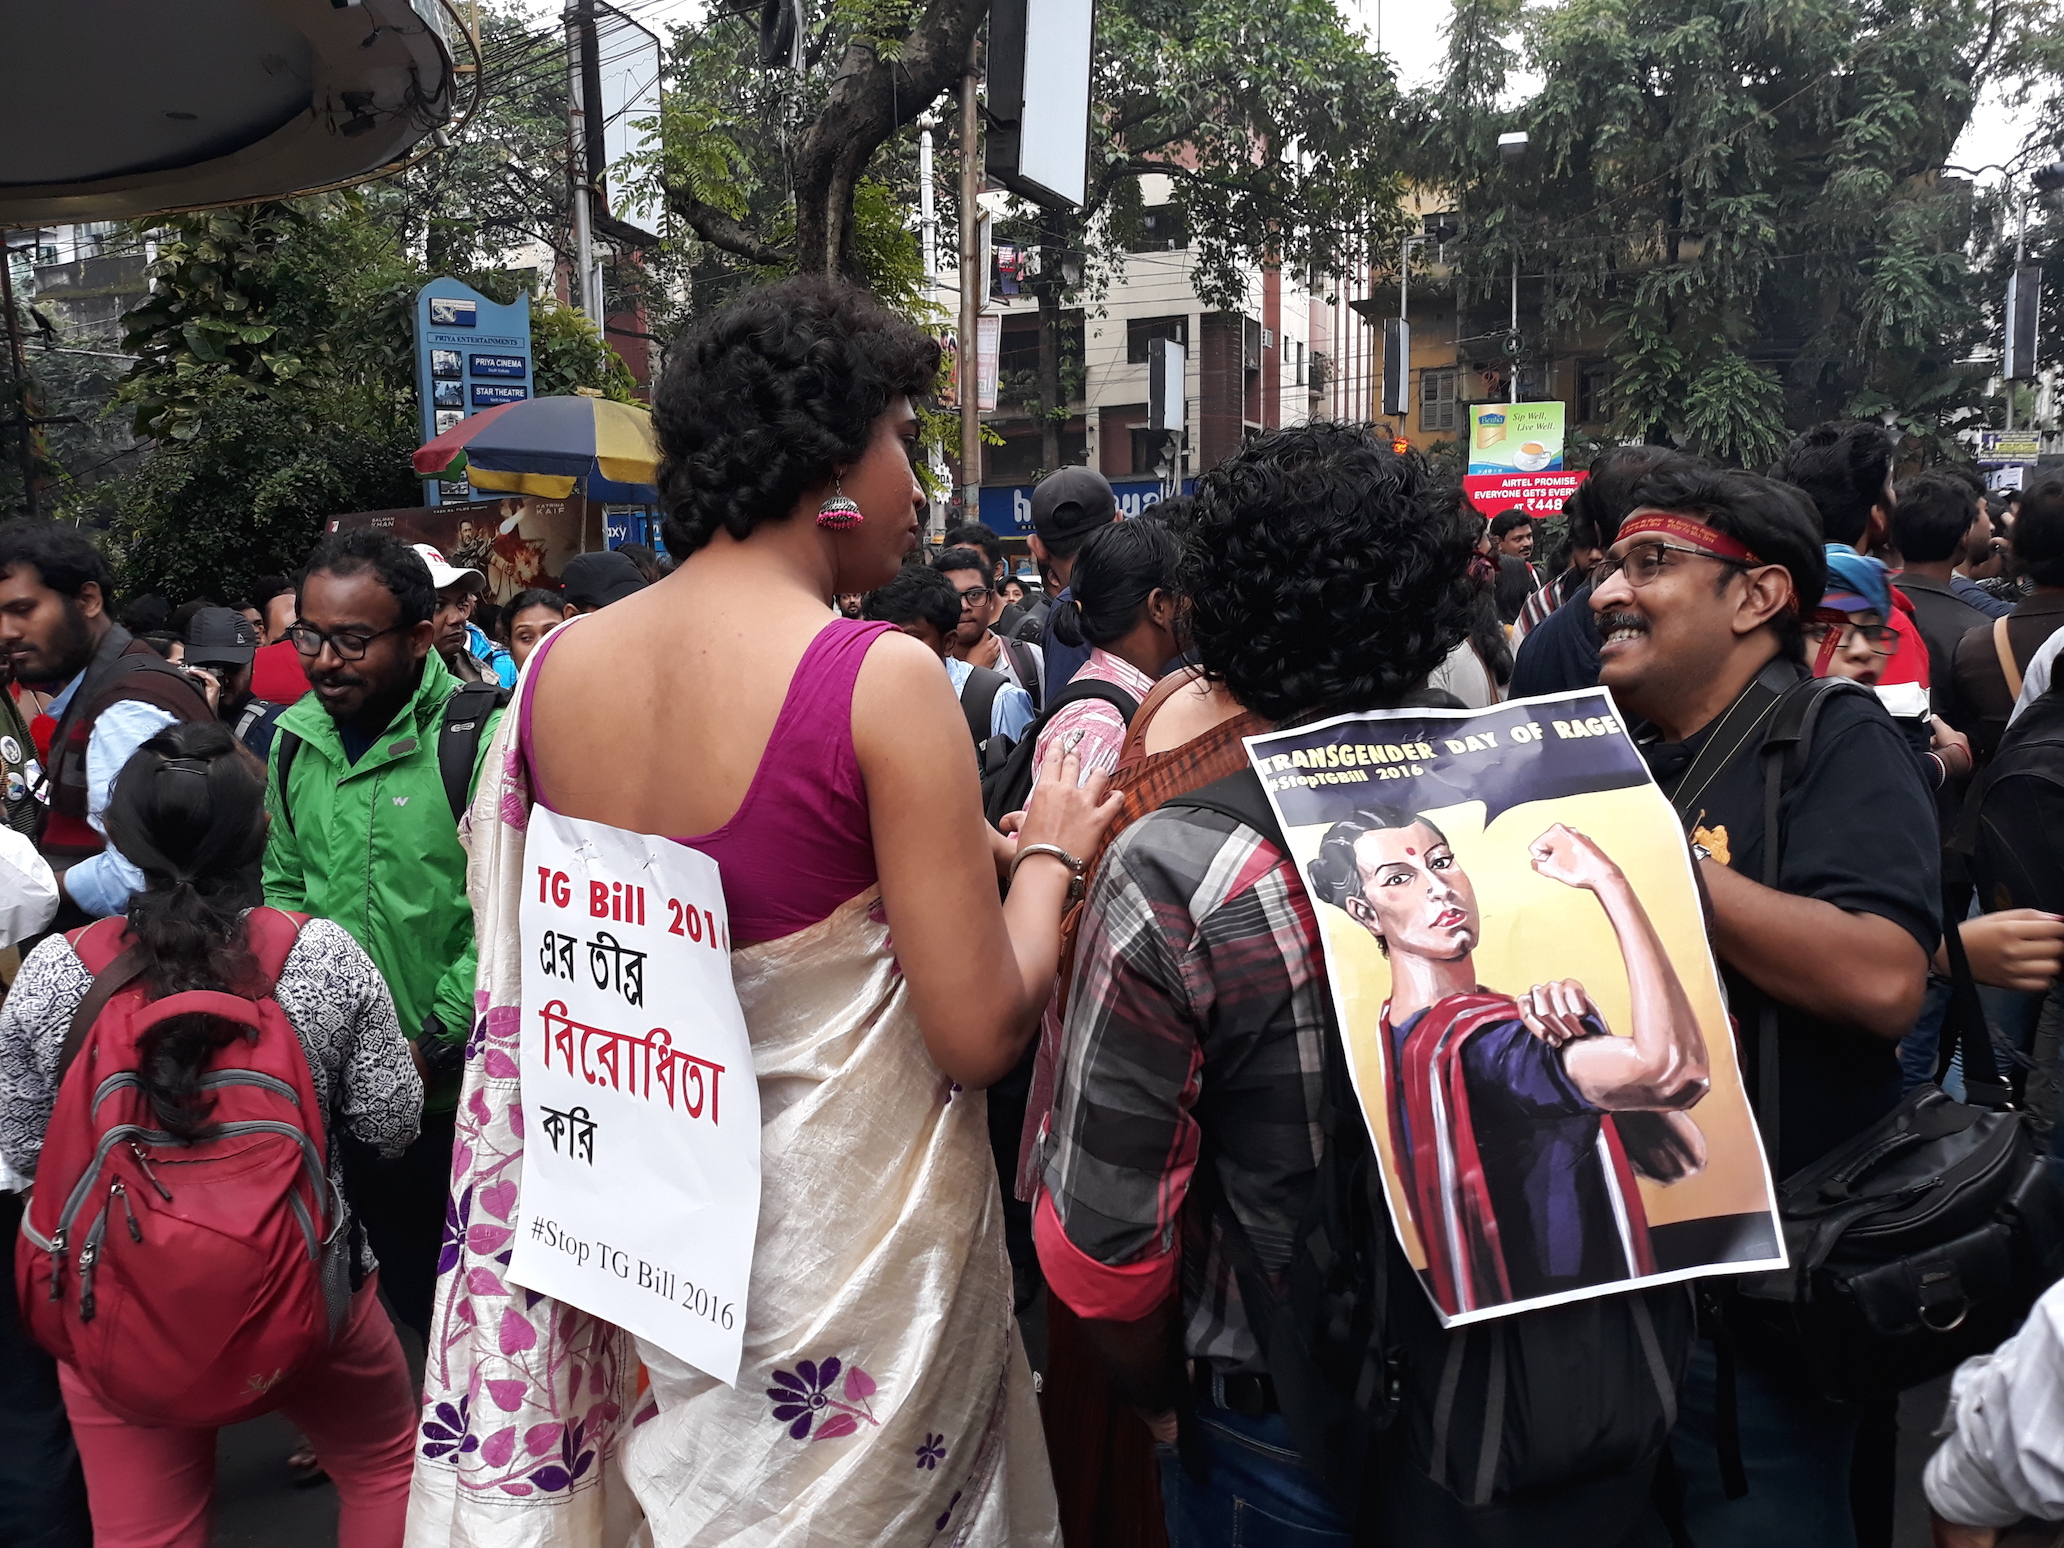 Caption: Trans activists protest the Transgender Persons Protection of Rights Bill, Credit: Sandip Roy